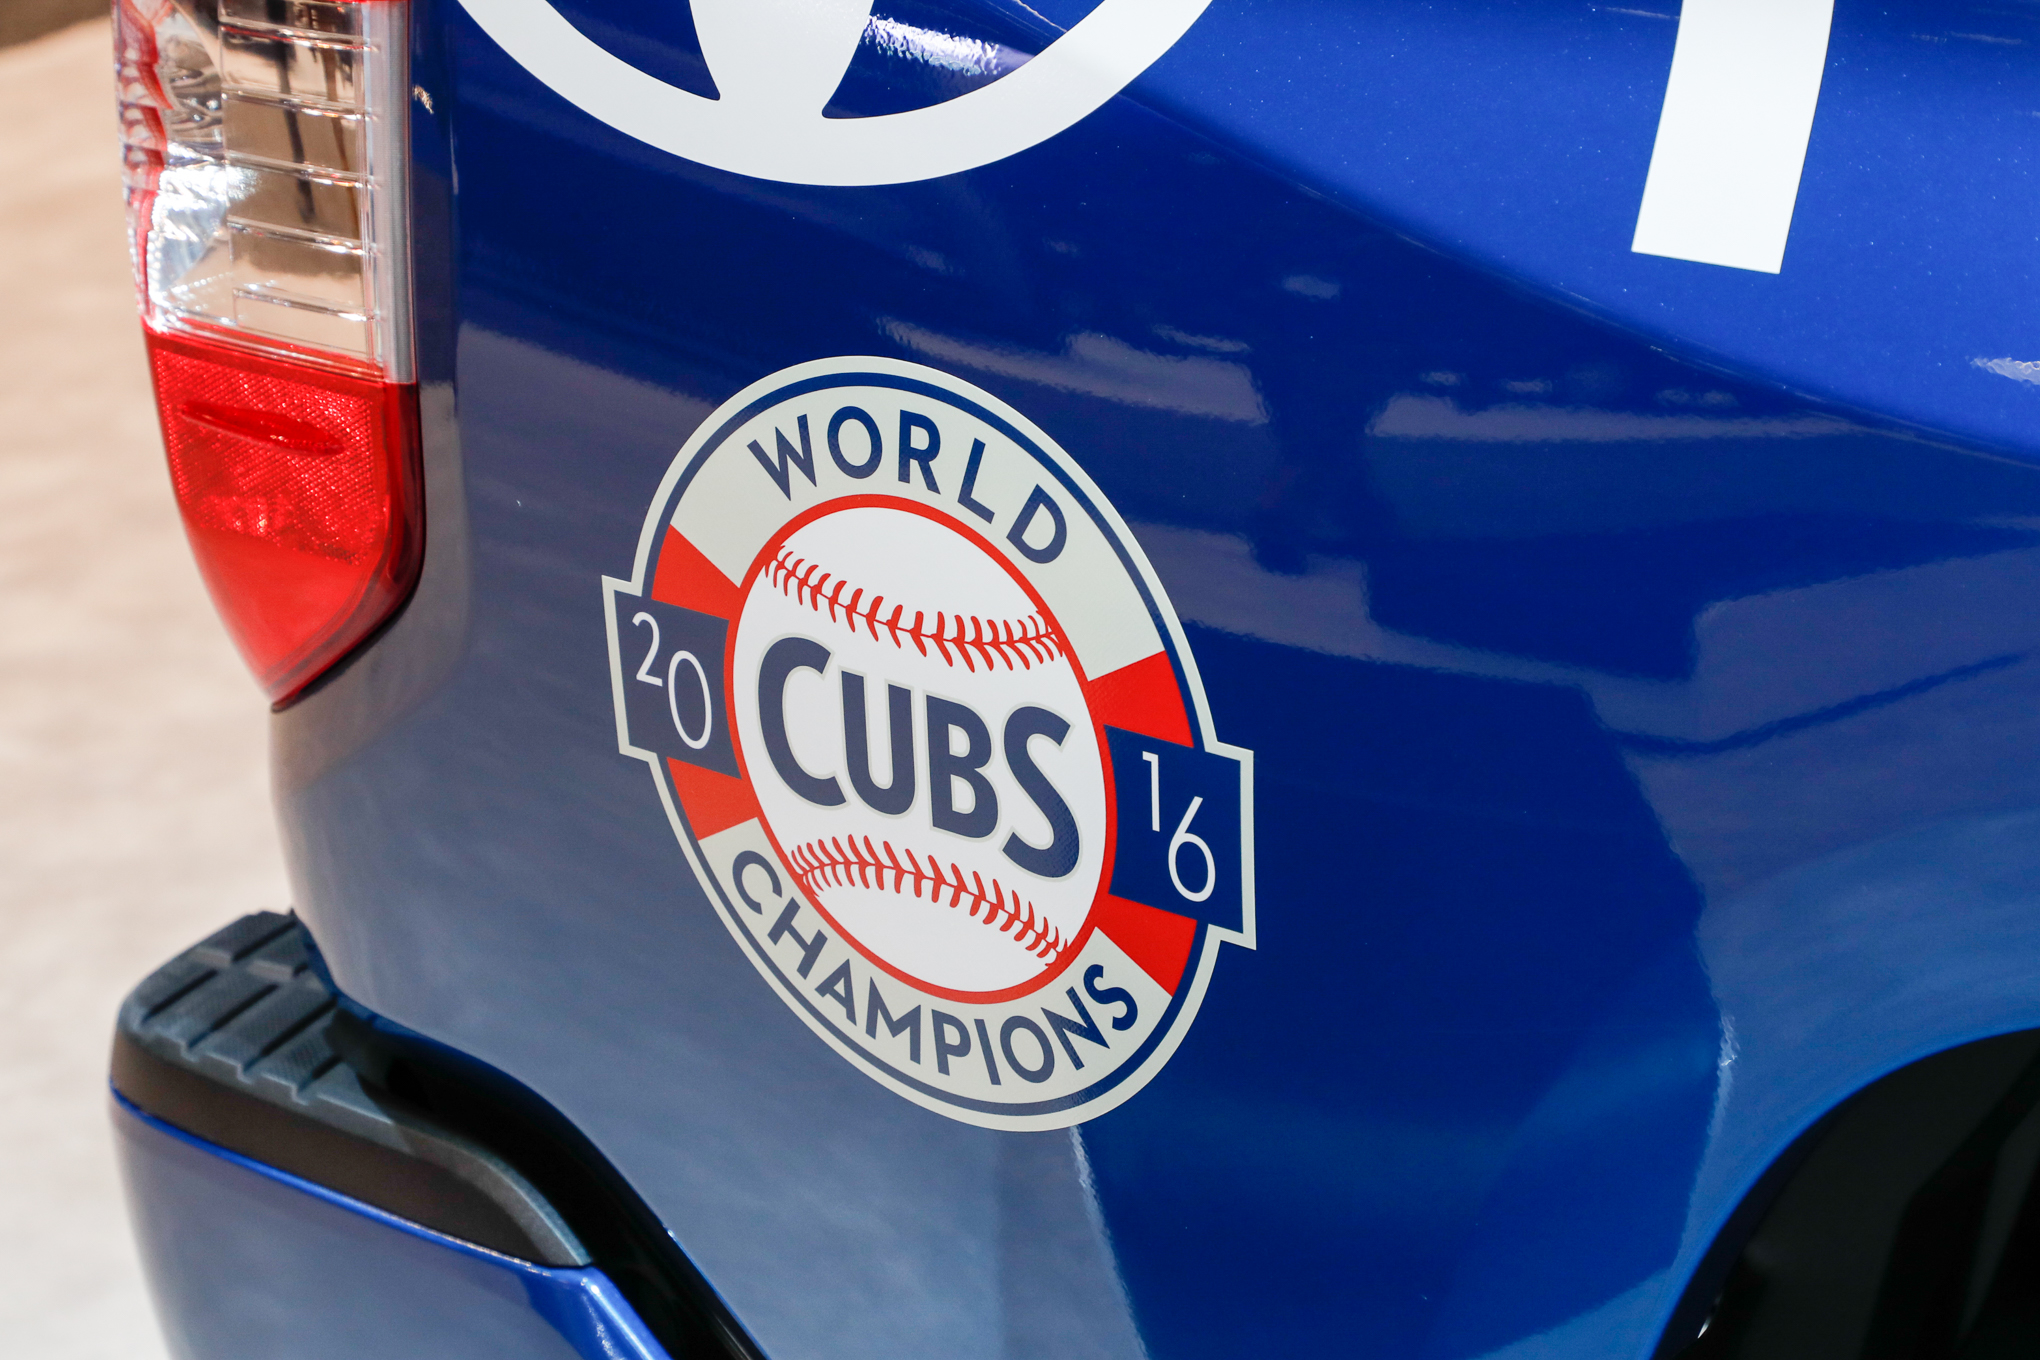 Toyota-Tundra-Chicago-Cubs-truck-World-Champs